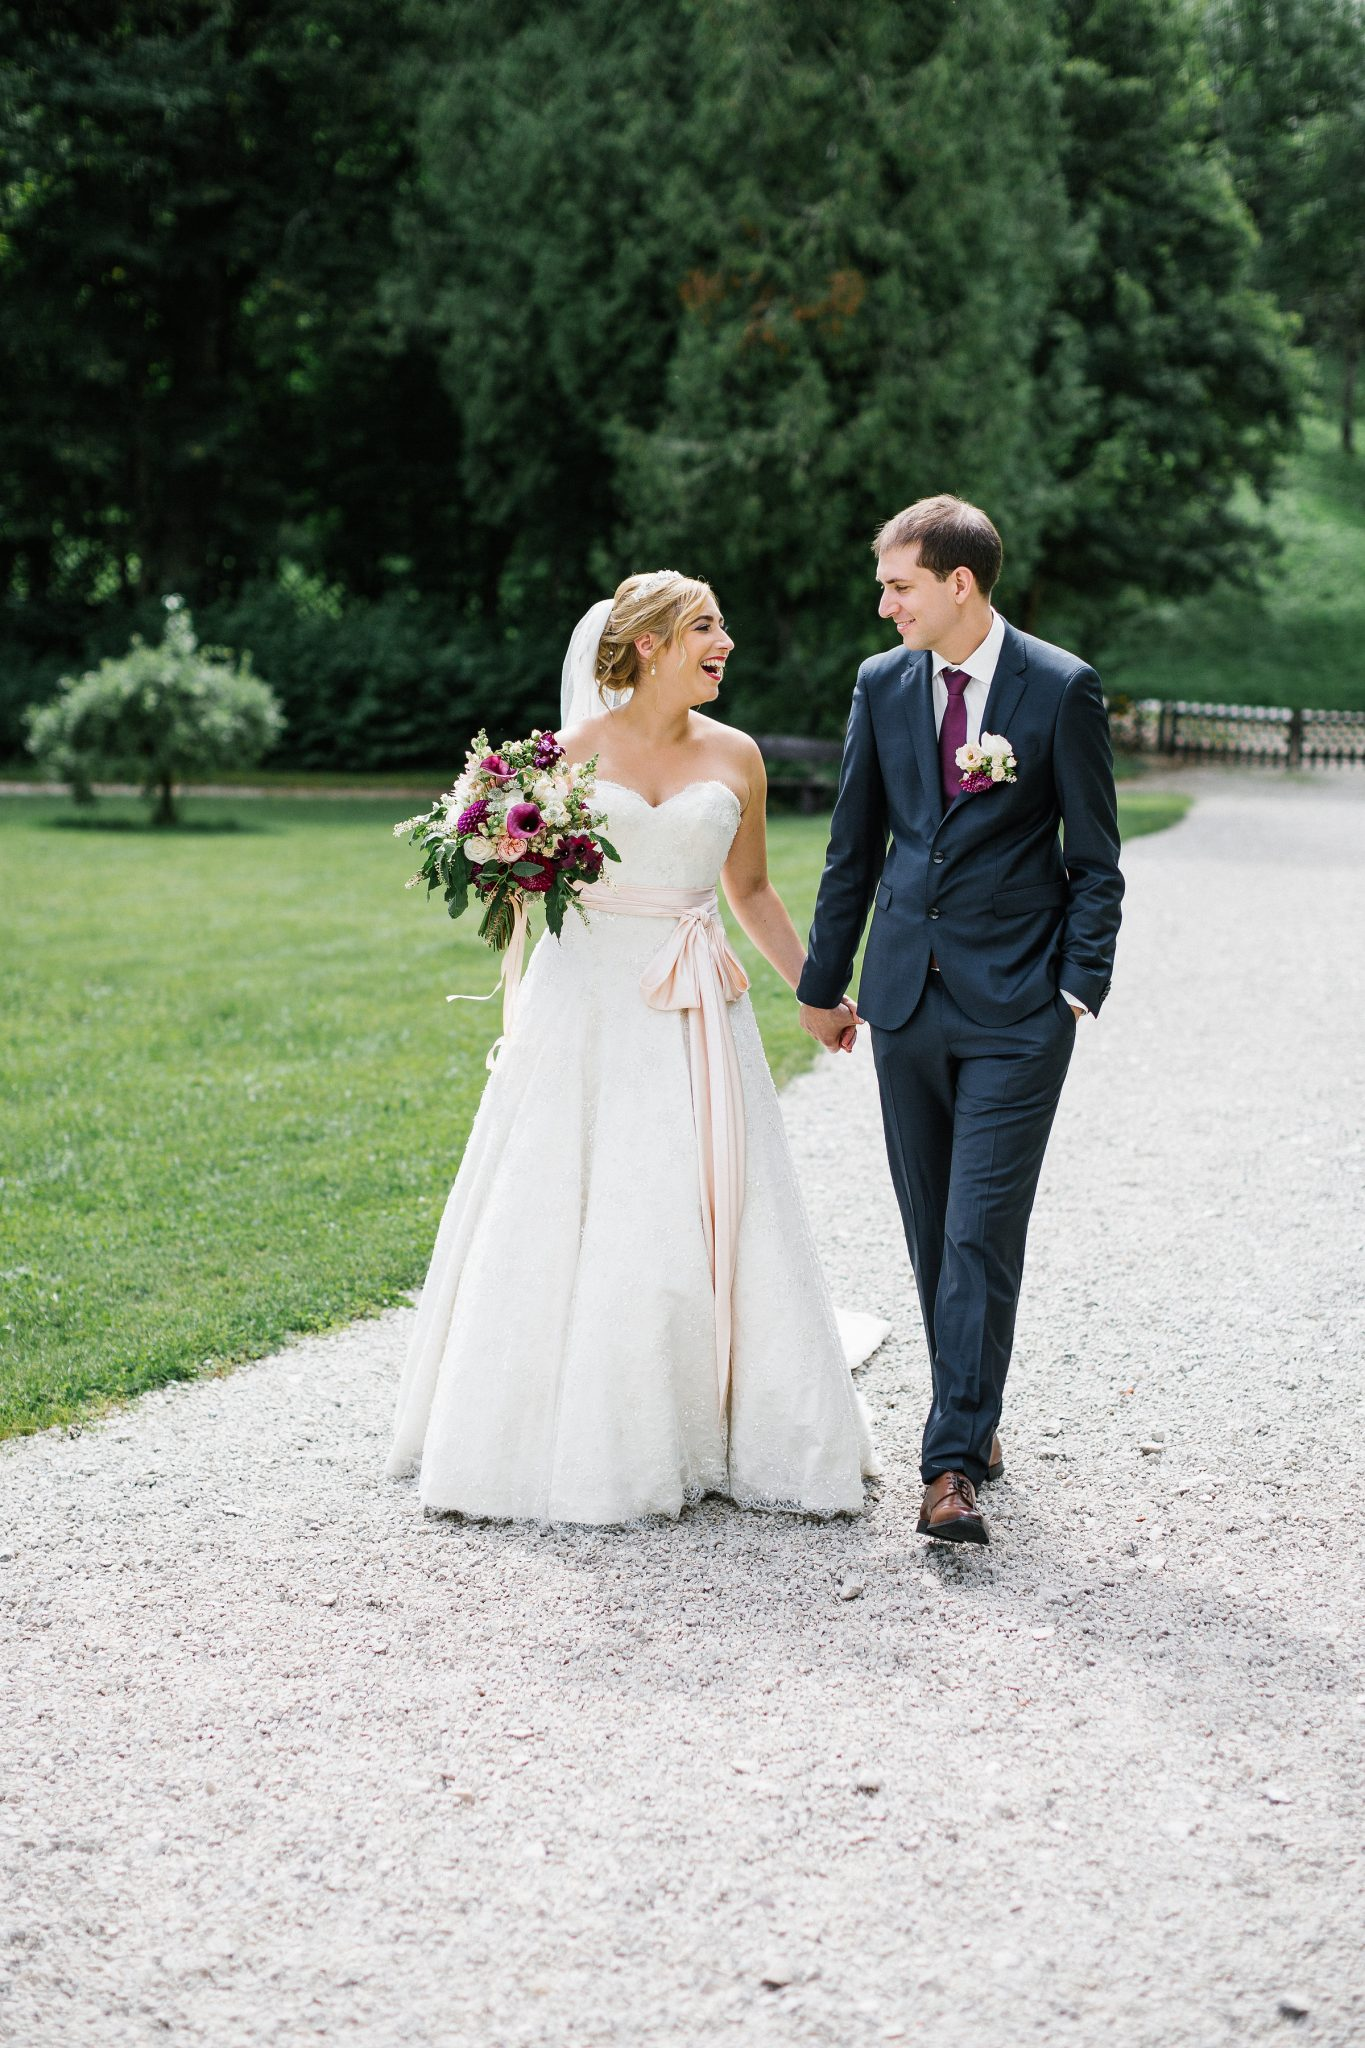 ANNEKE'S BEADED LACE WEDDING DRESS